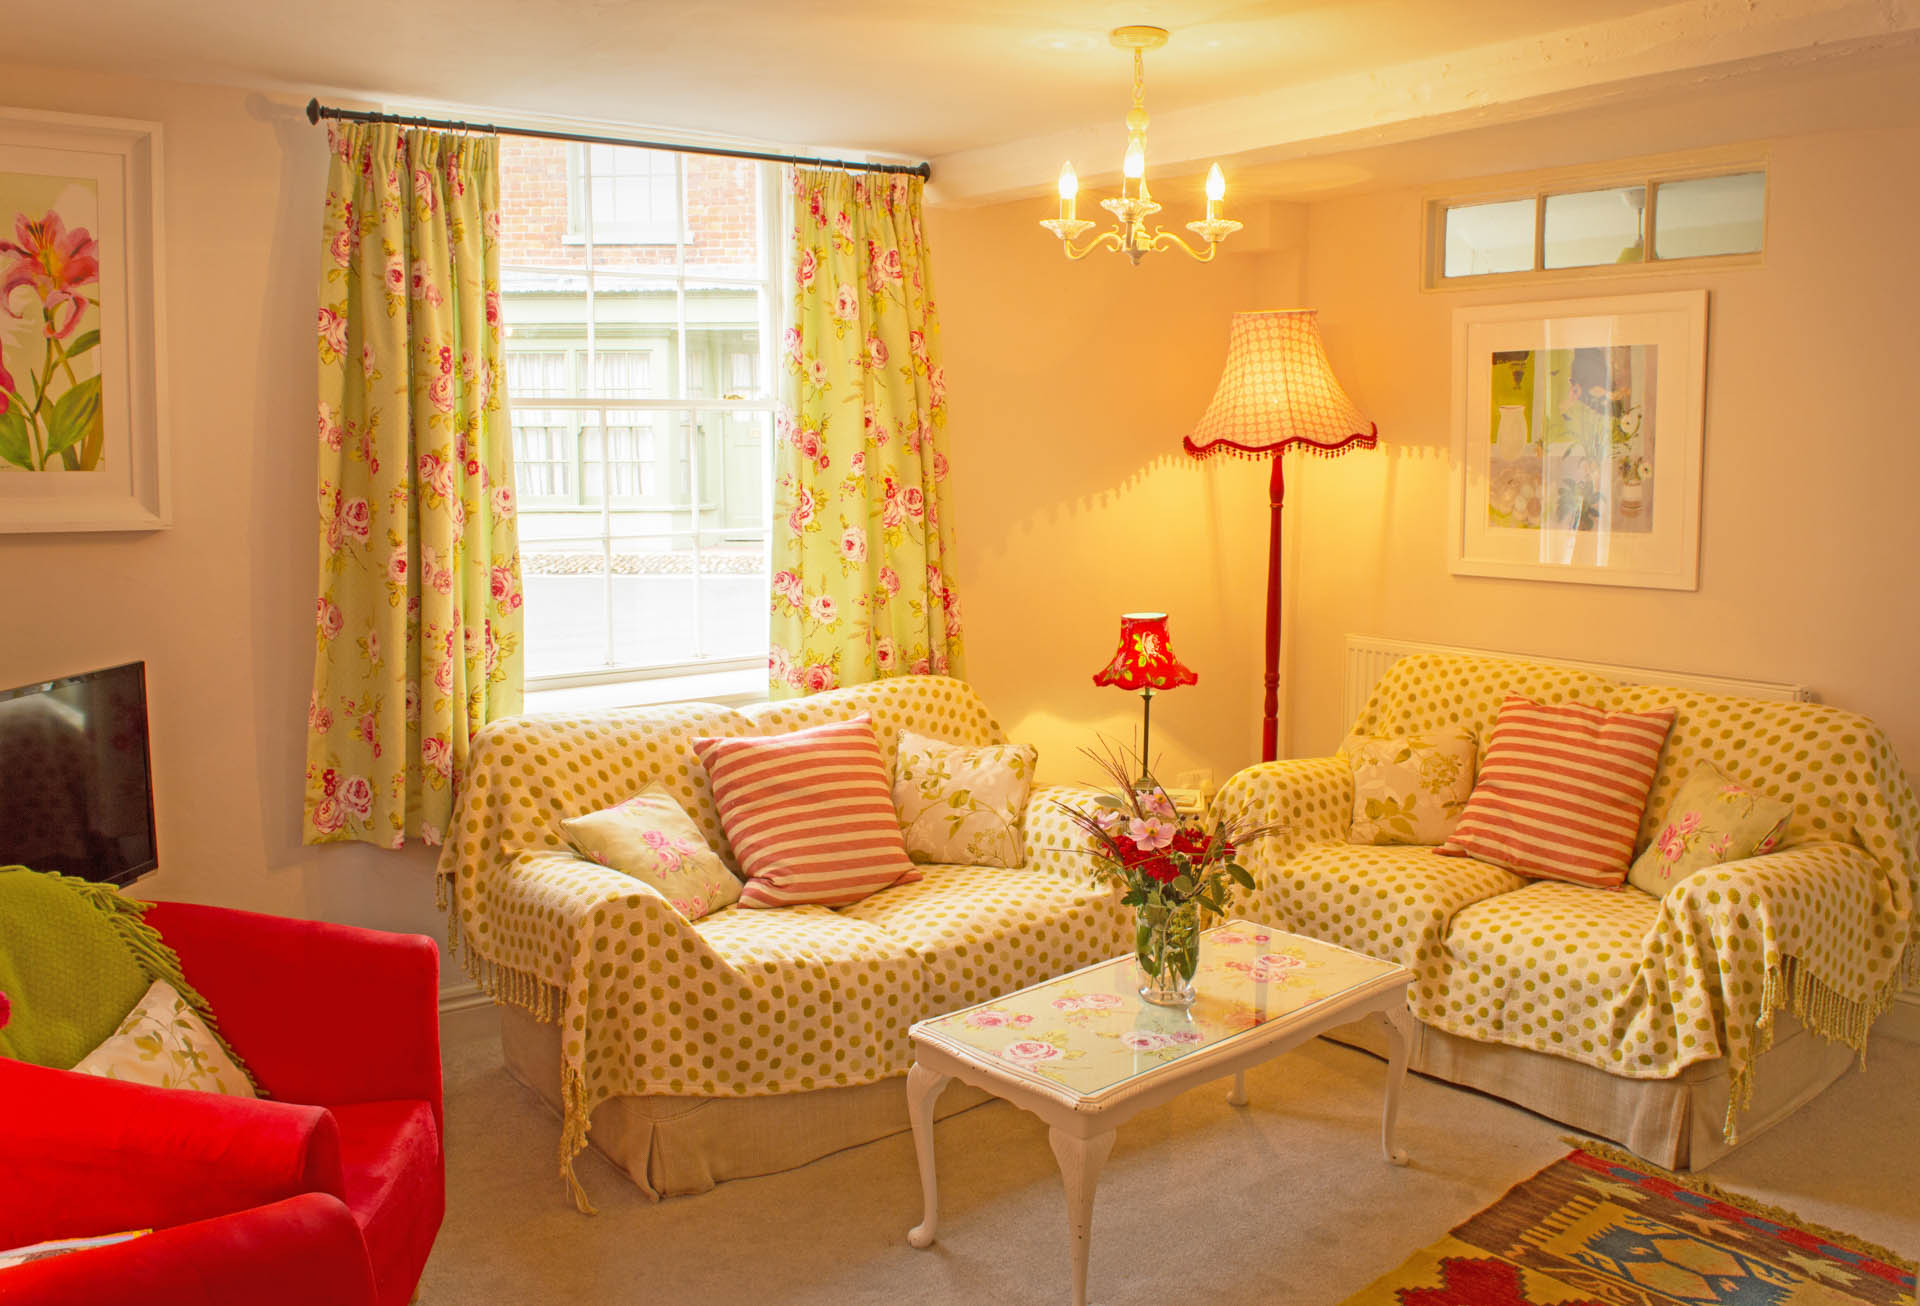 Sofa and comortable seating for guests staying at The Old Paul Pry.